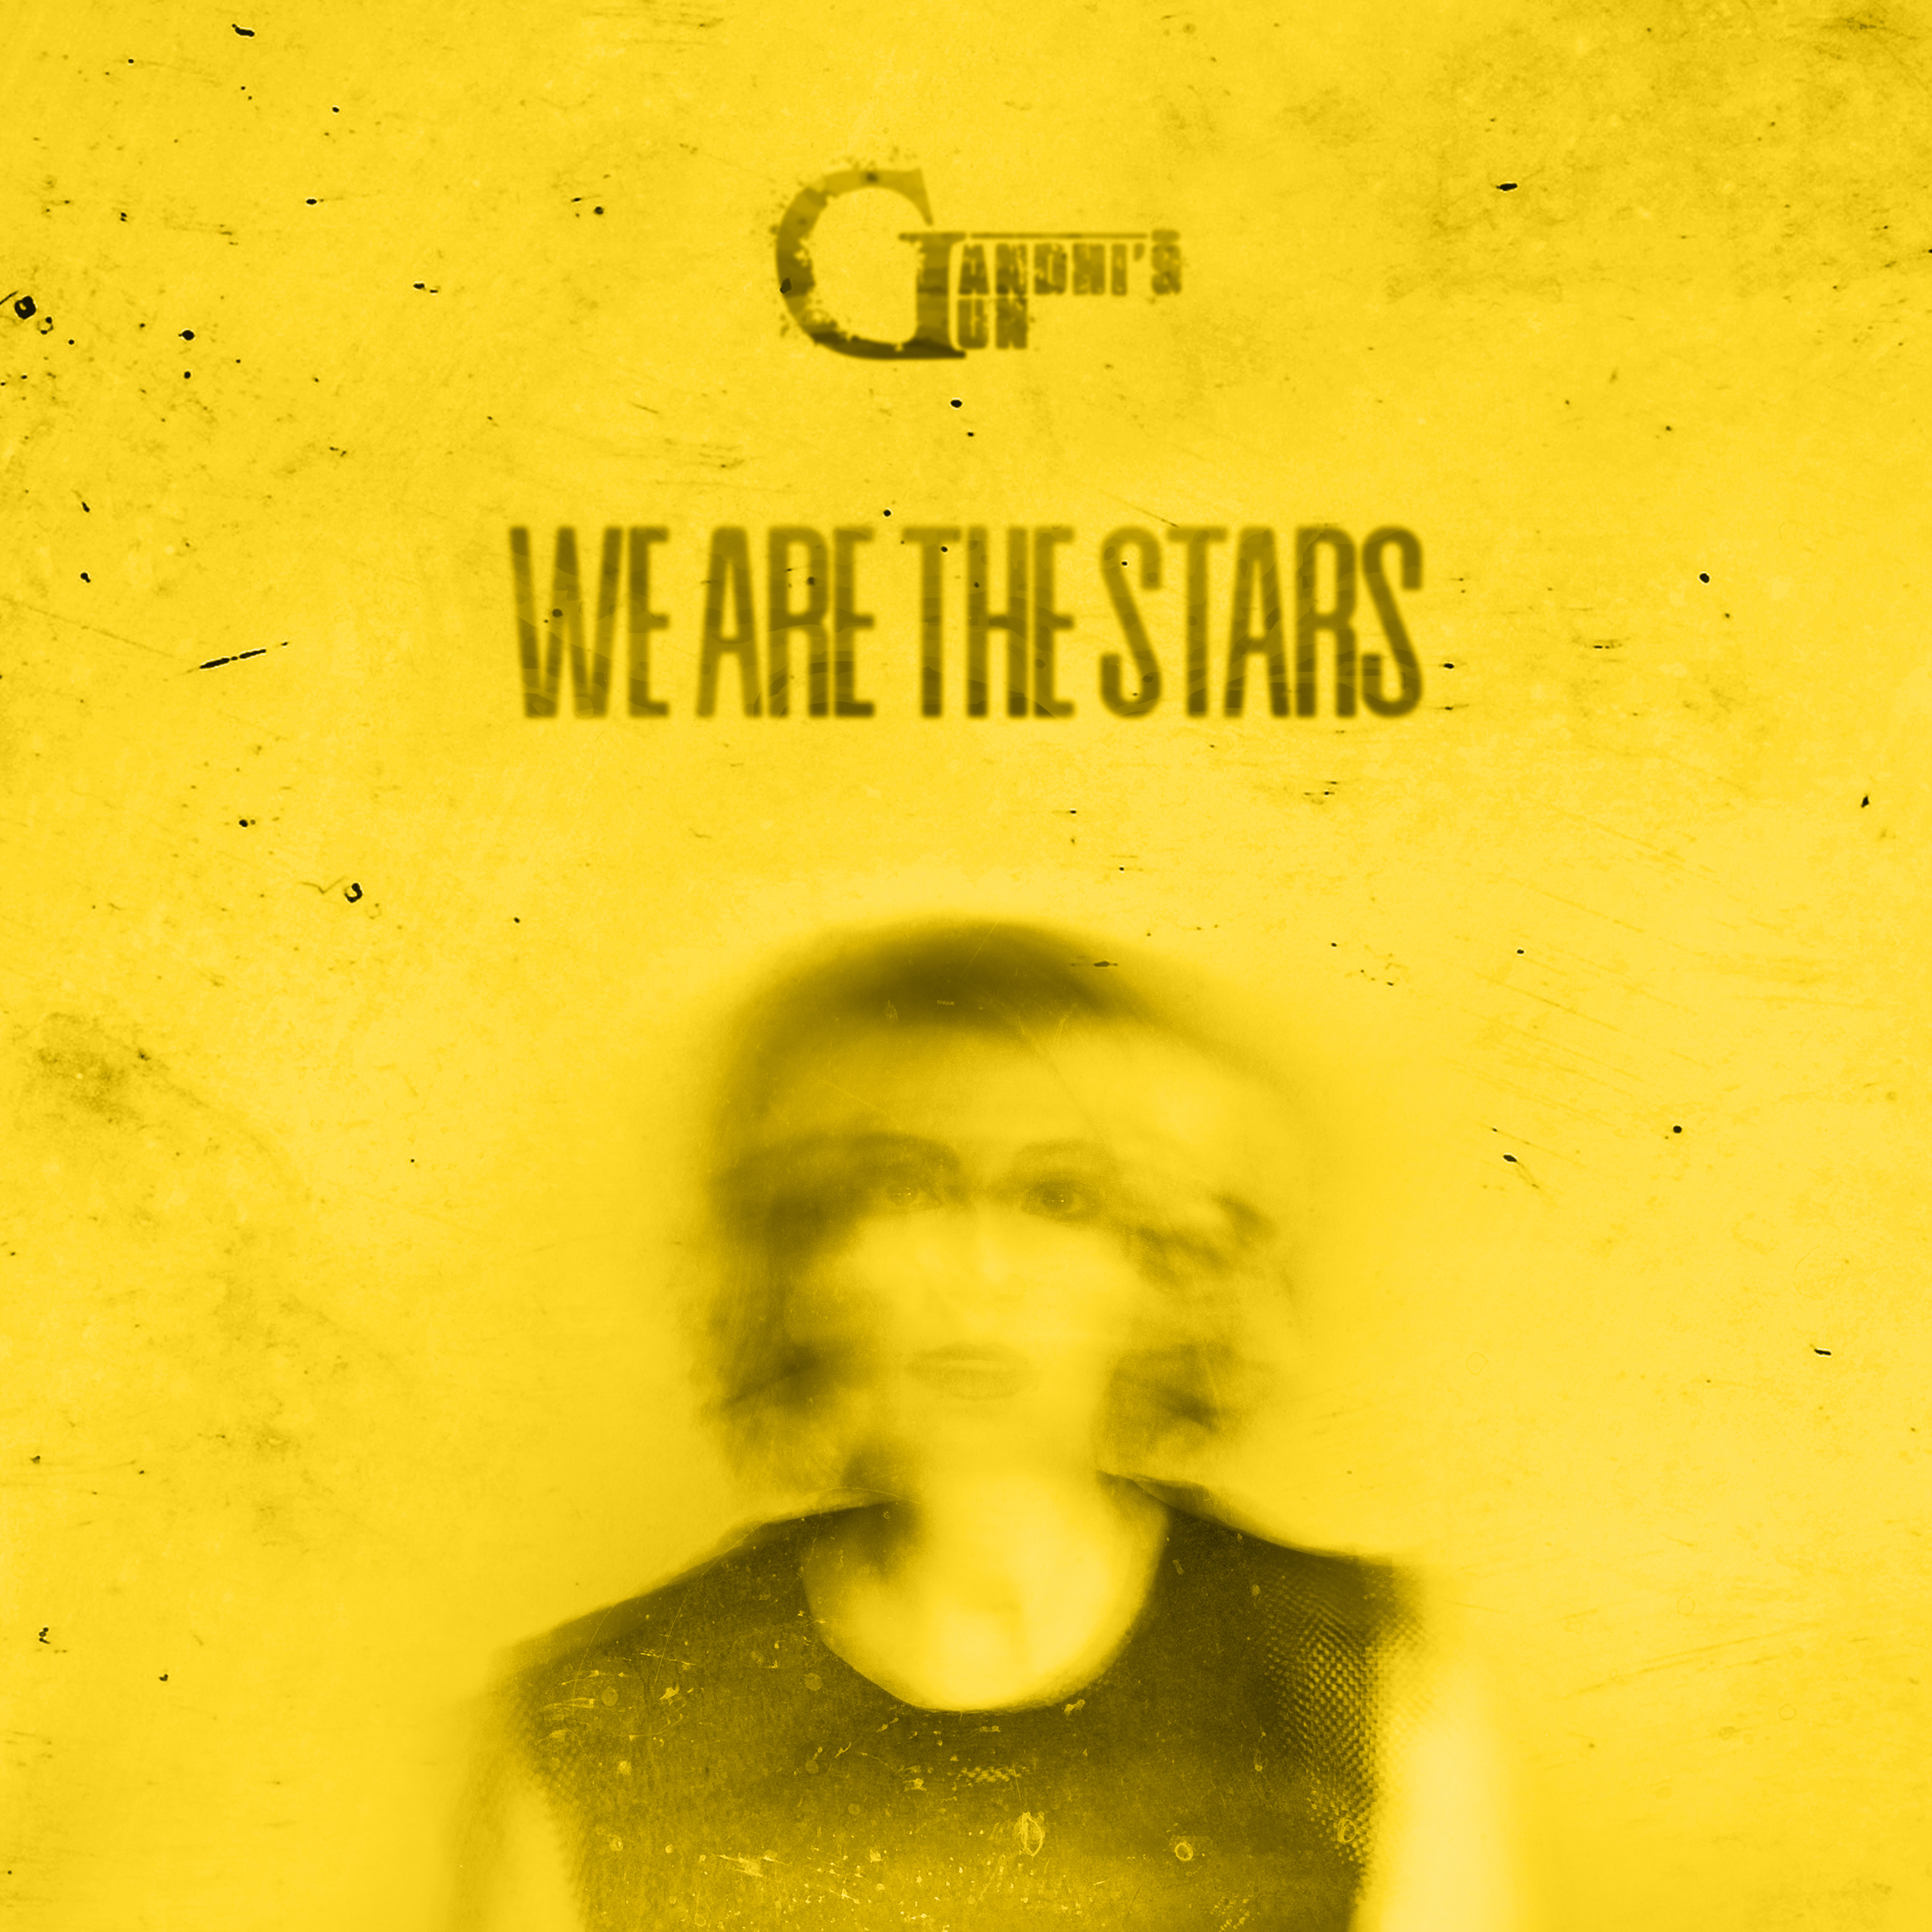 Gandhi's Gun - We Are The Stars